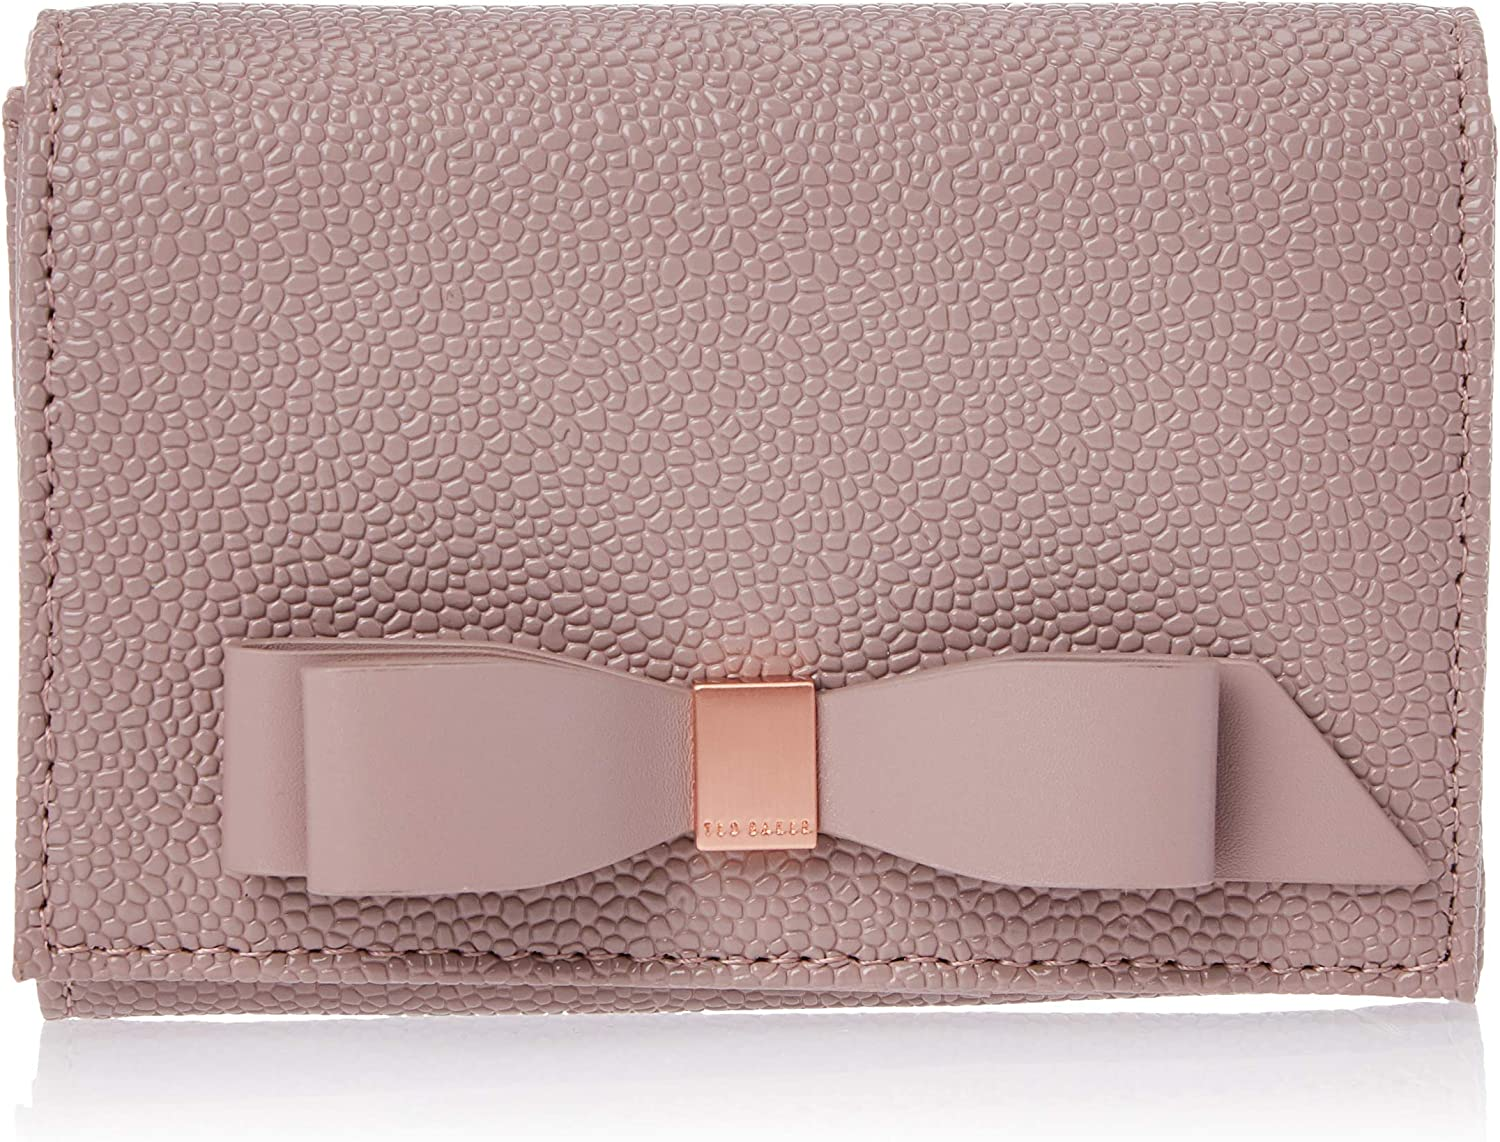 Ted Baker Pink Zipped Jewellery Storage Case with Gold Ted Baker Branded Bow